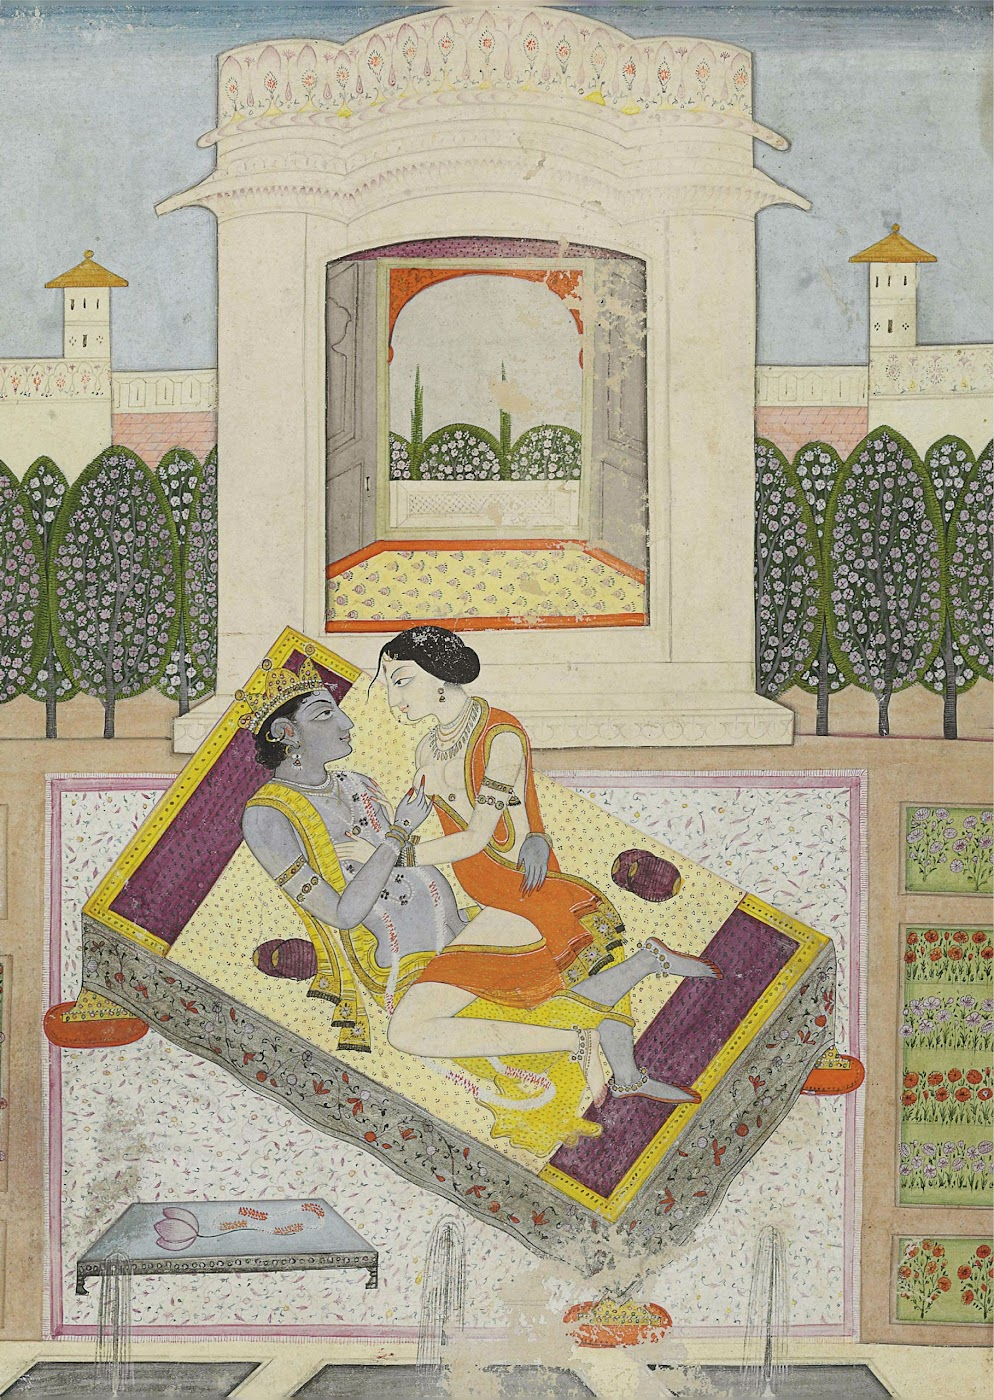 Krishna and Radha Engaged in an Amorous Embrace - Miniature Painting, Guler, Circa 1810